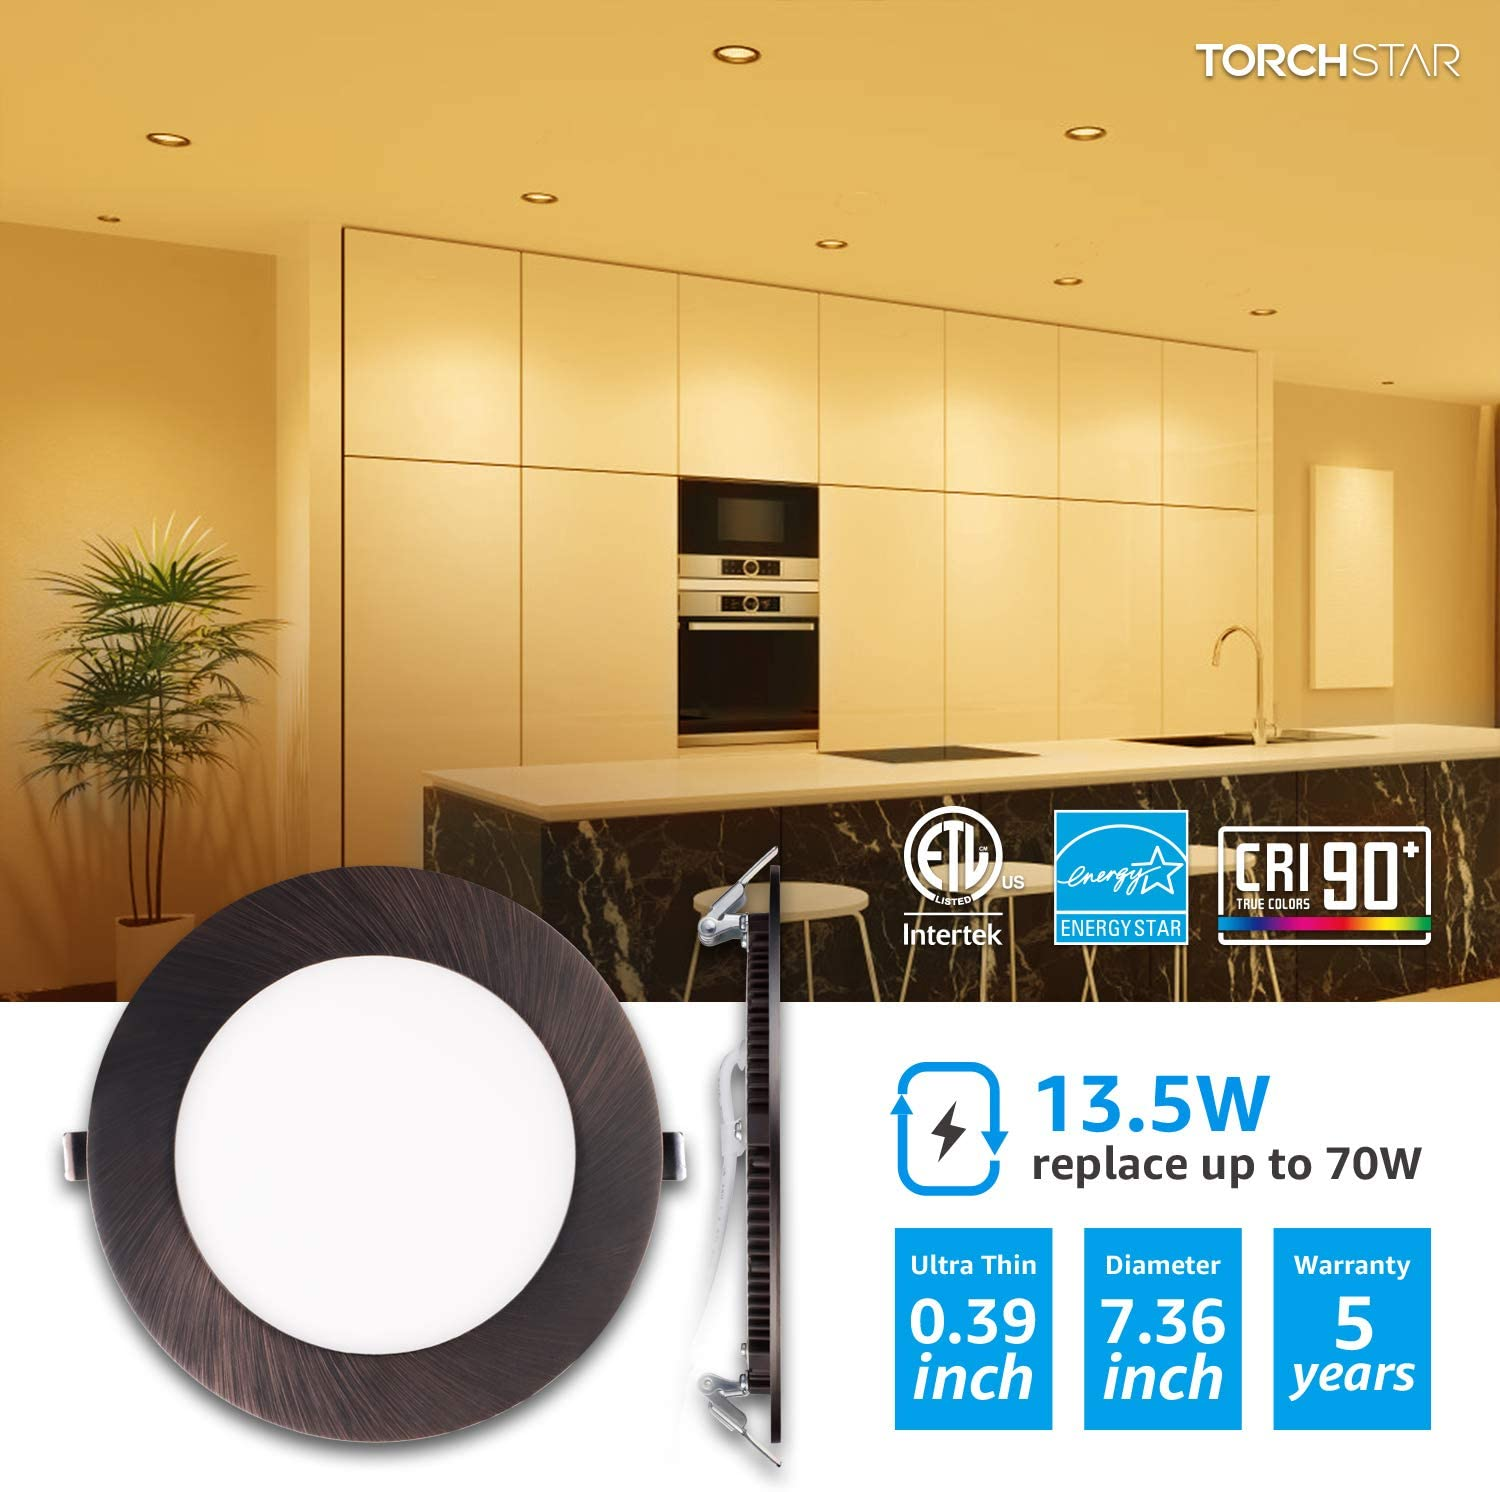 TORCHSTAR Premium 6 Inch Slim Panel Downlight with J-Box Oil Rubbed Bronze 5-Year Warranty 2700K Soft White 850lm Pack of 6 13.5W Dimmable Ultra-Thin LED Recessed Light ETL /& Energy Star